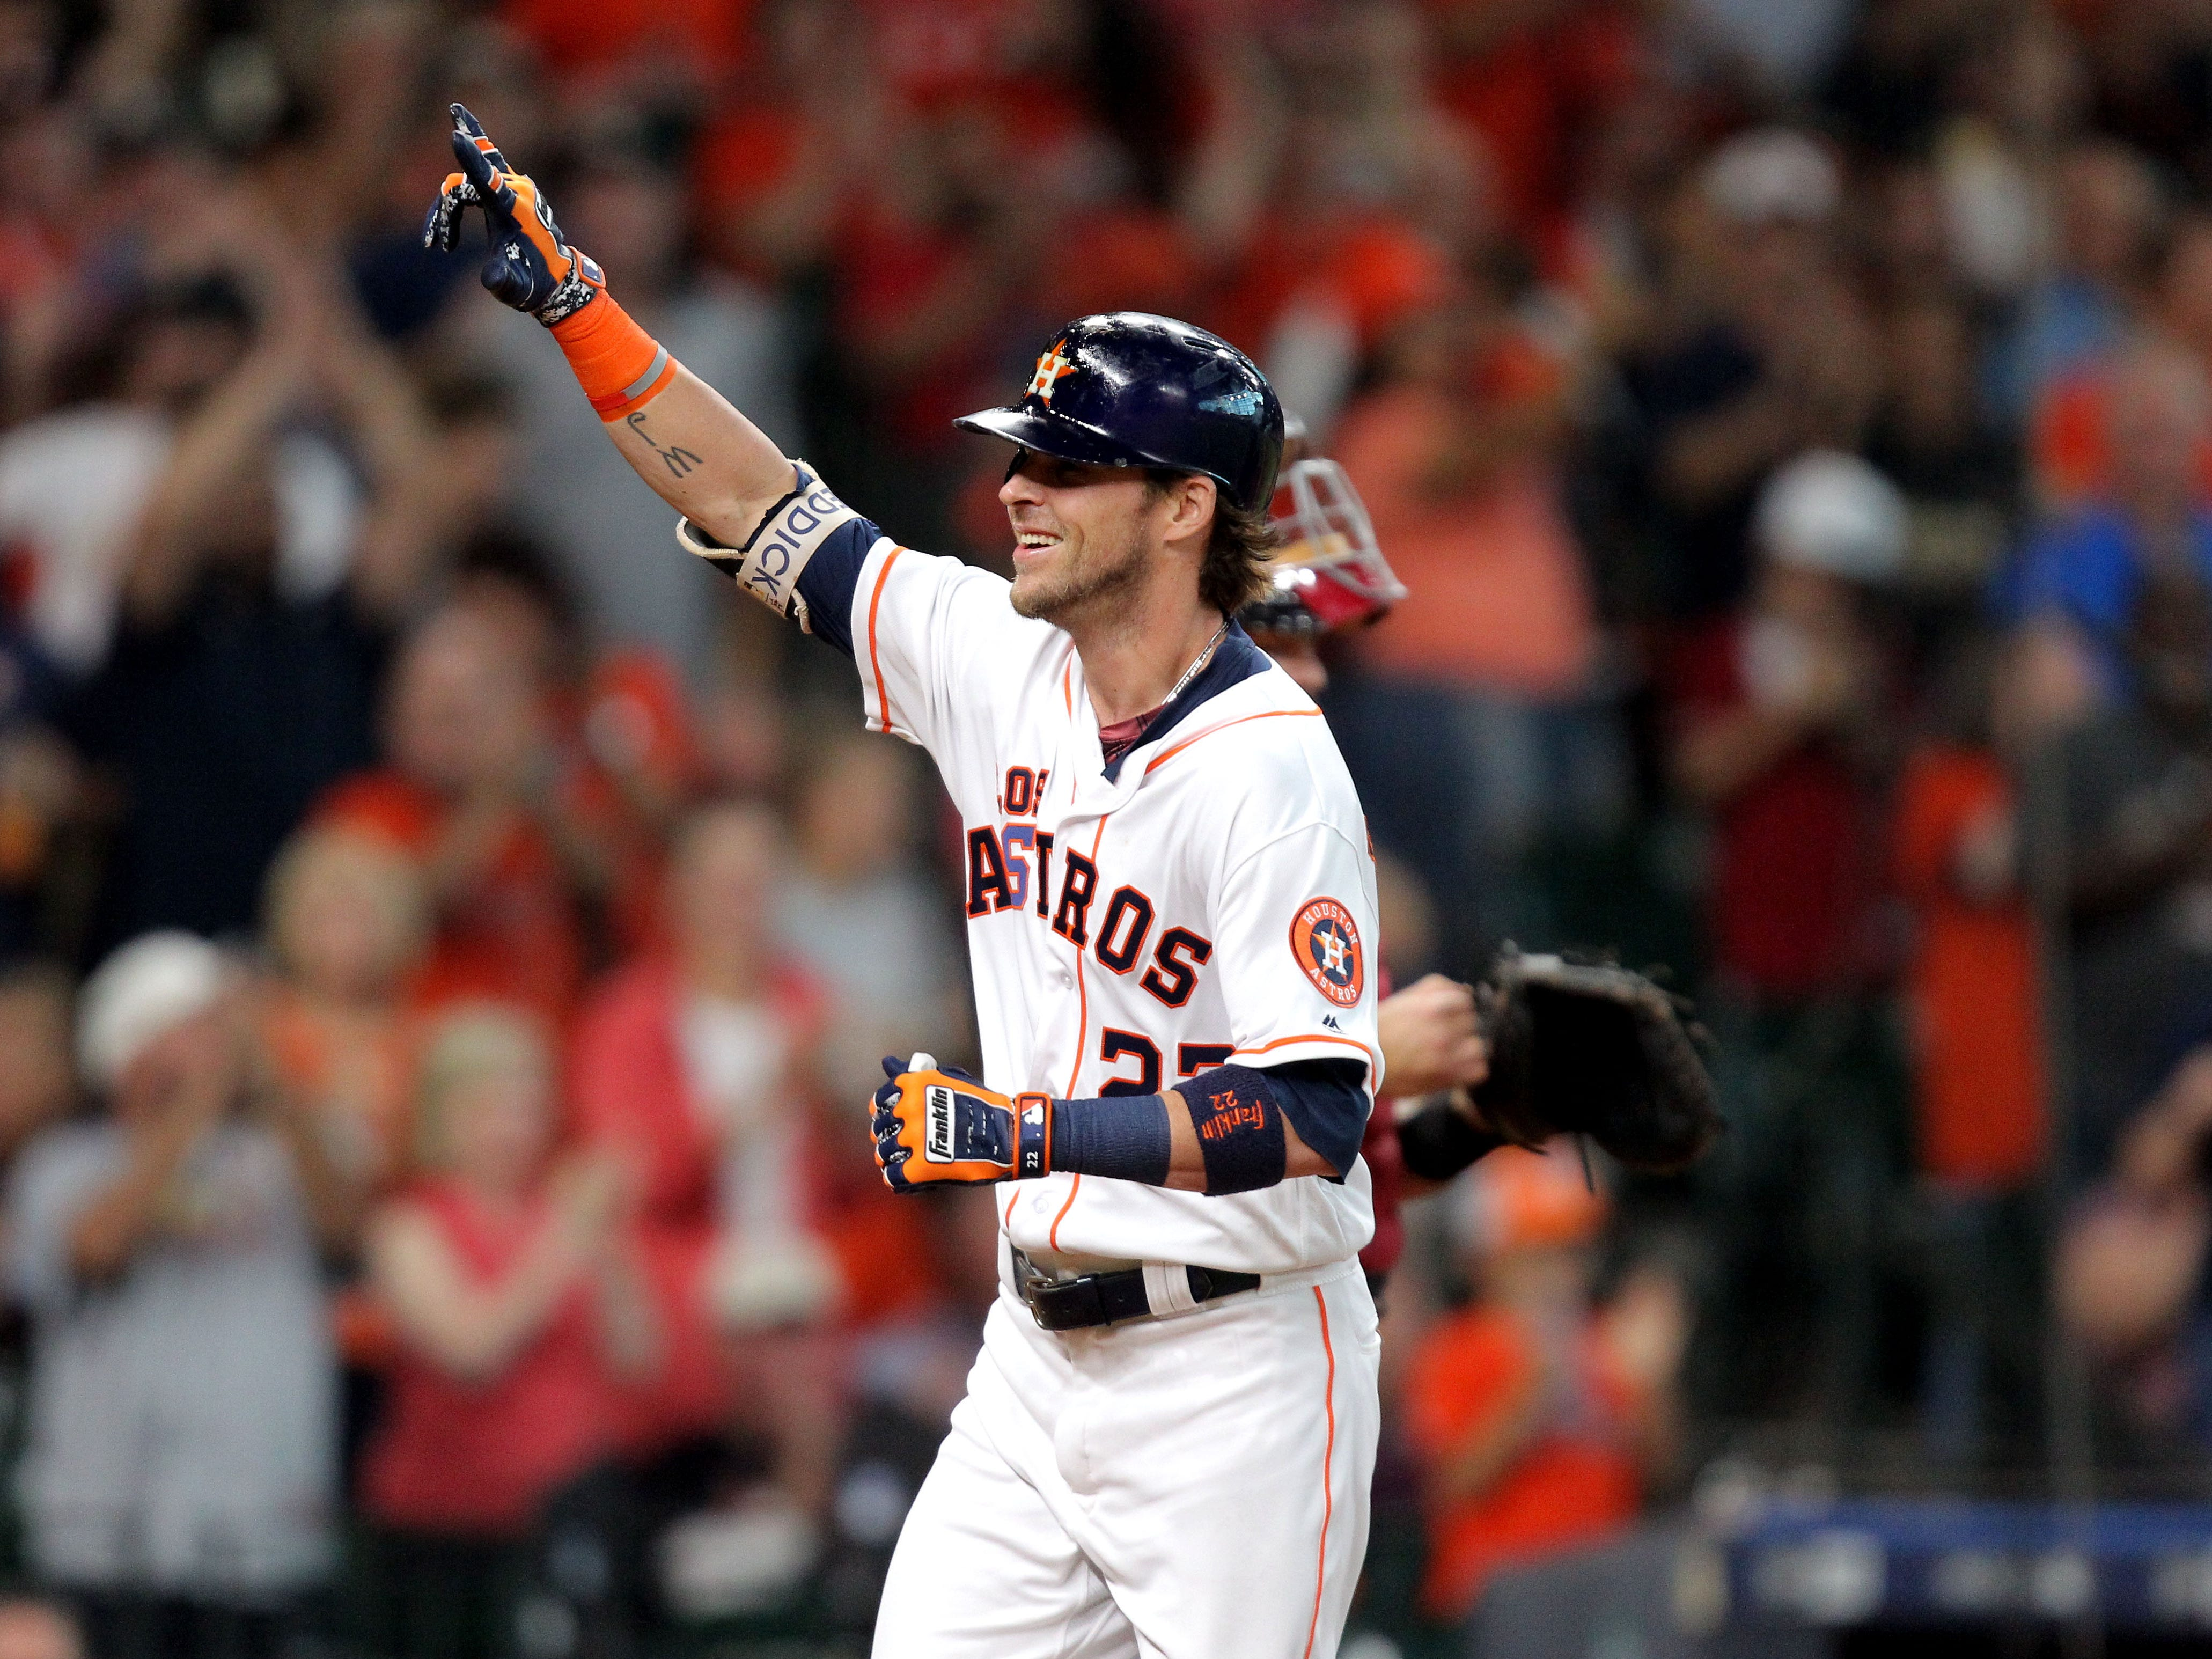 Sep 15, 2018; Houston, TX, USA; Houston Astros right fielder Josh Reddick (22) celebrates after hitting a home run to right field against the Arizona Diamondbacks during the third inning at Minute Maid Park. Mandatory Credit: Erik Williams-USA TODAY Sports